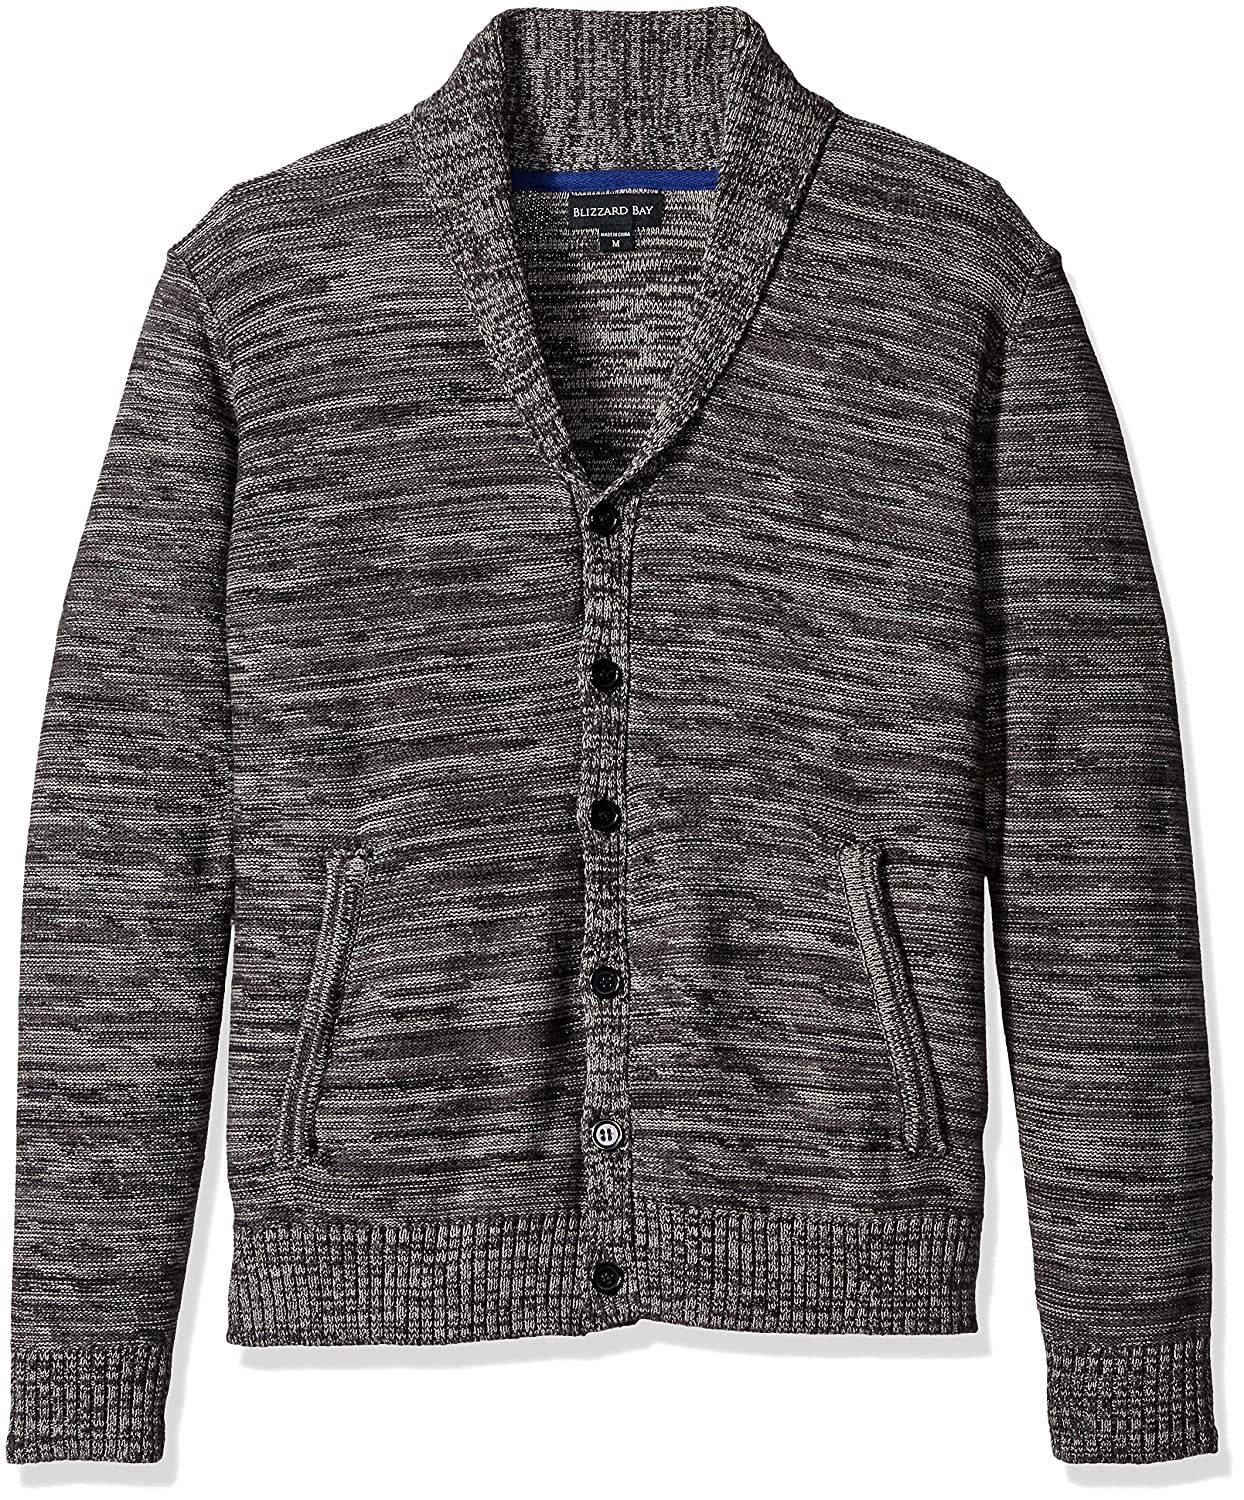 Blizzard Bay Men's Shawl Neck Sweater Grey Small Blizzard Bay Mens Apparel E60847